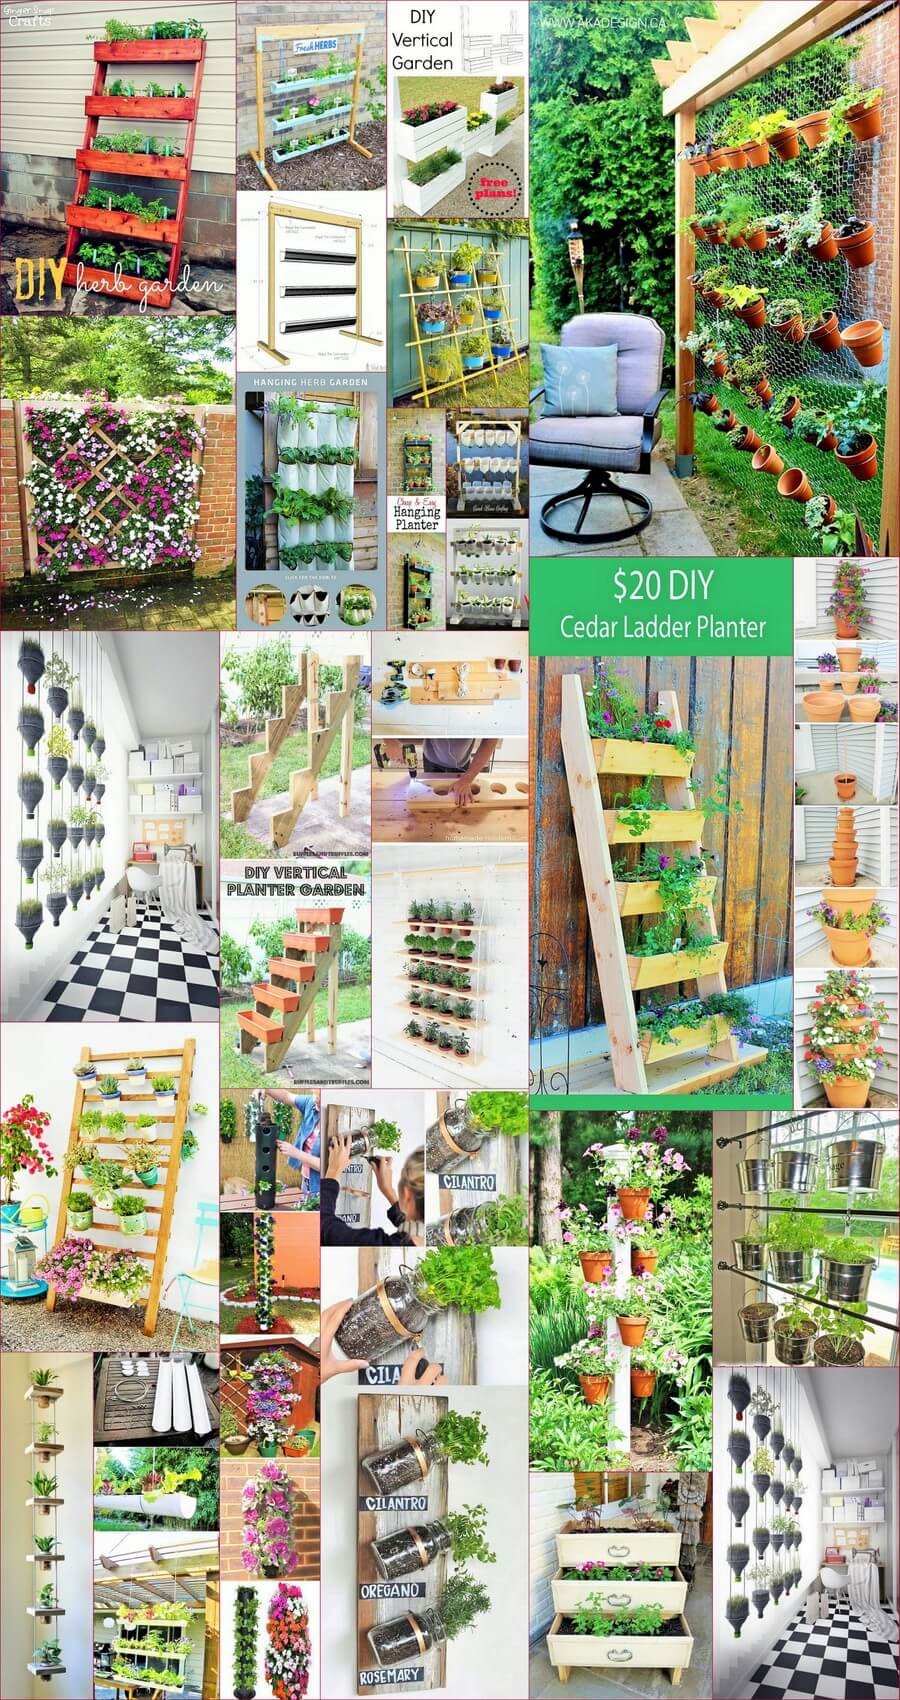 DIY-vertical-garden-ideas